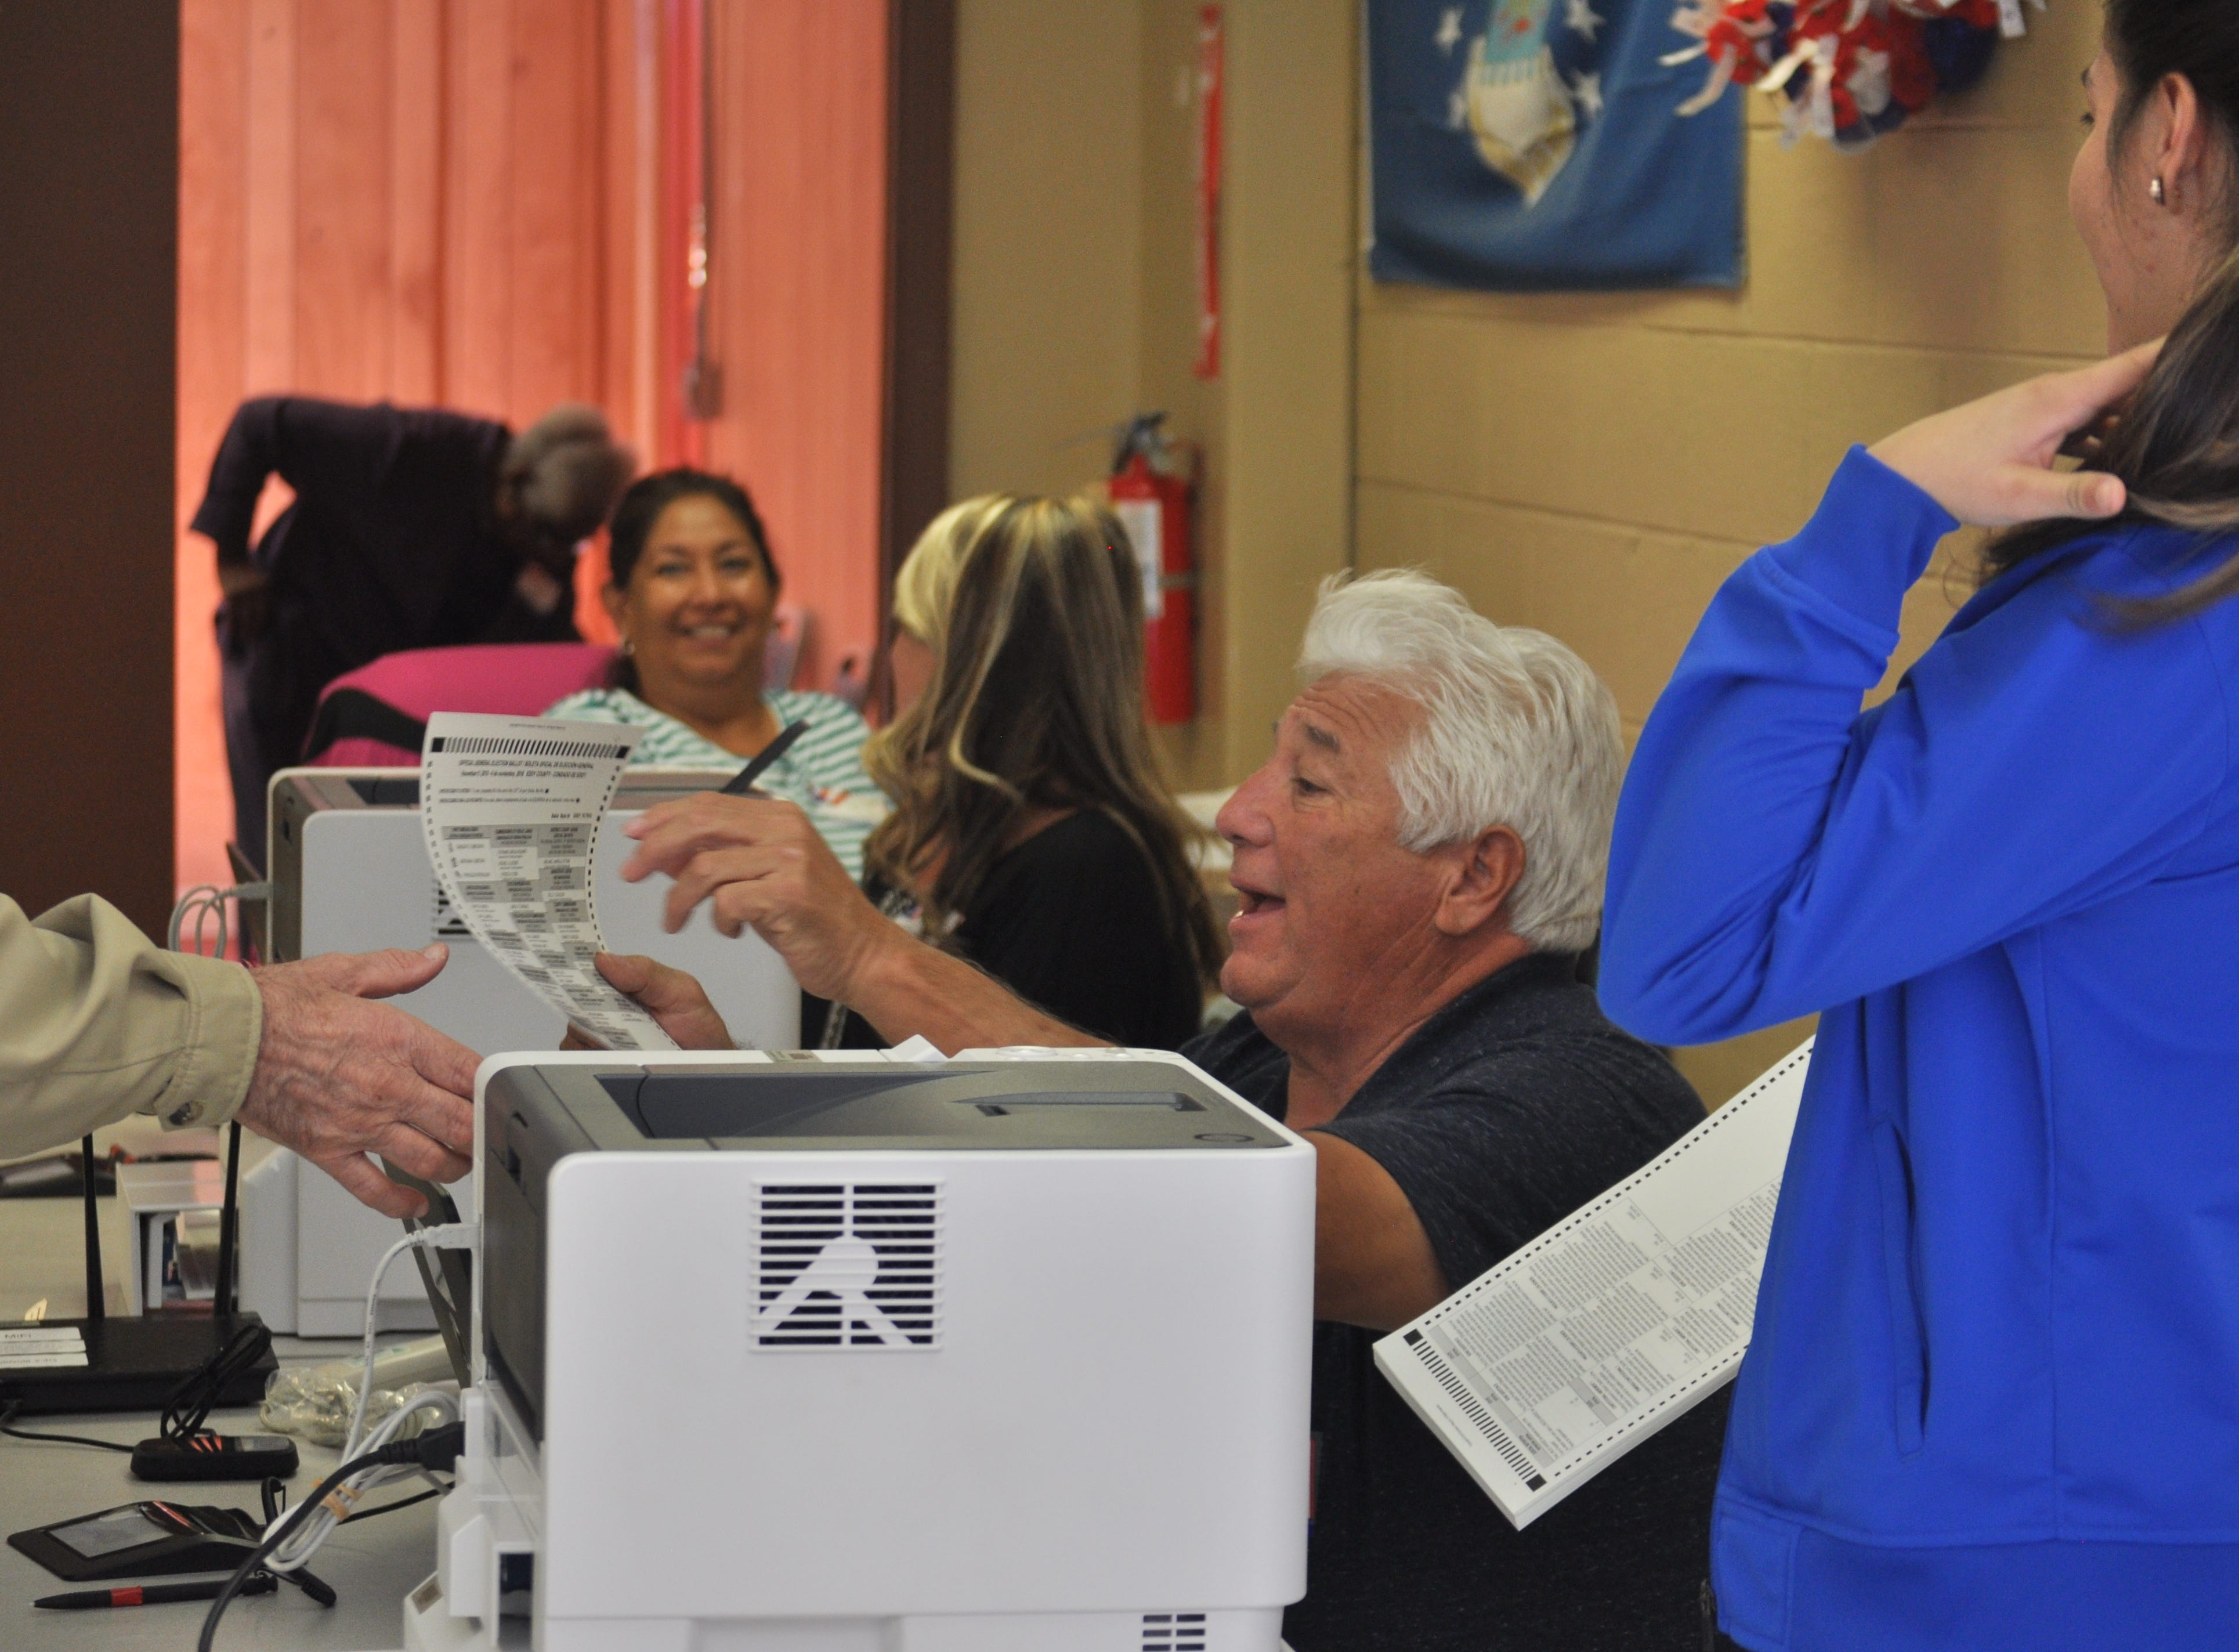 Election clerk Clemente Urquez passes out ballots, Nov. 6, 2018 at the Veterans of Foreign Wars Carlsbad post.